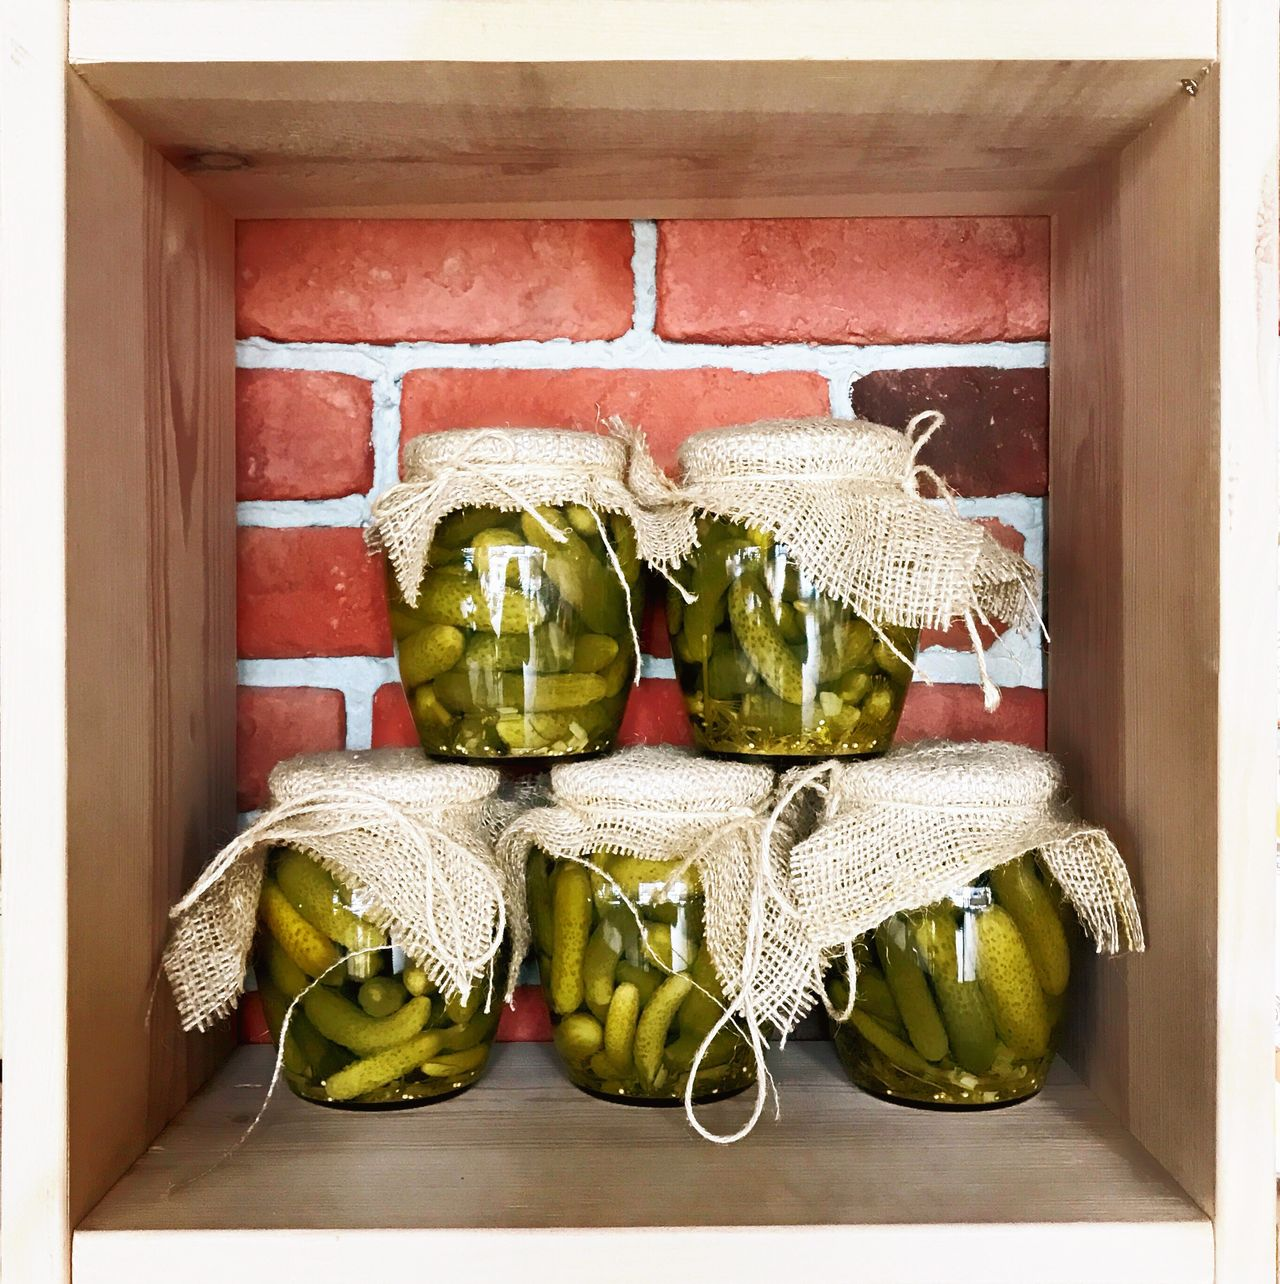 Indoors  No People Home Interior Close-up Country Style Country Country Life Vegetables Decoration Jars  Food Tradition IPhoneography Cucumber Cucumbers